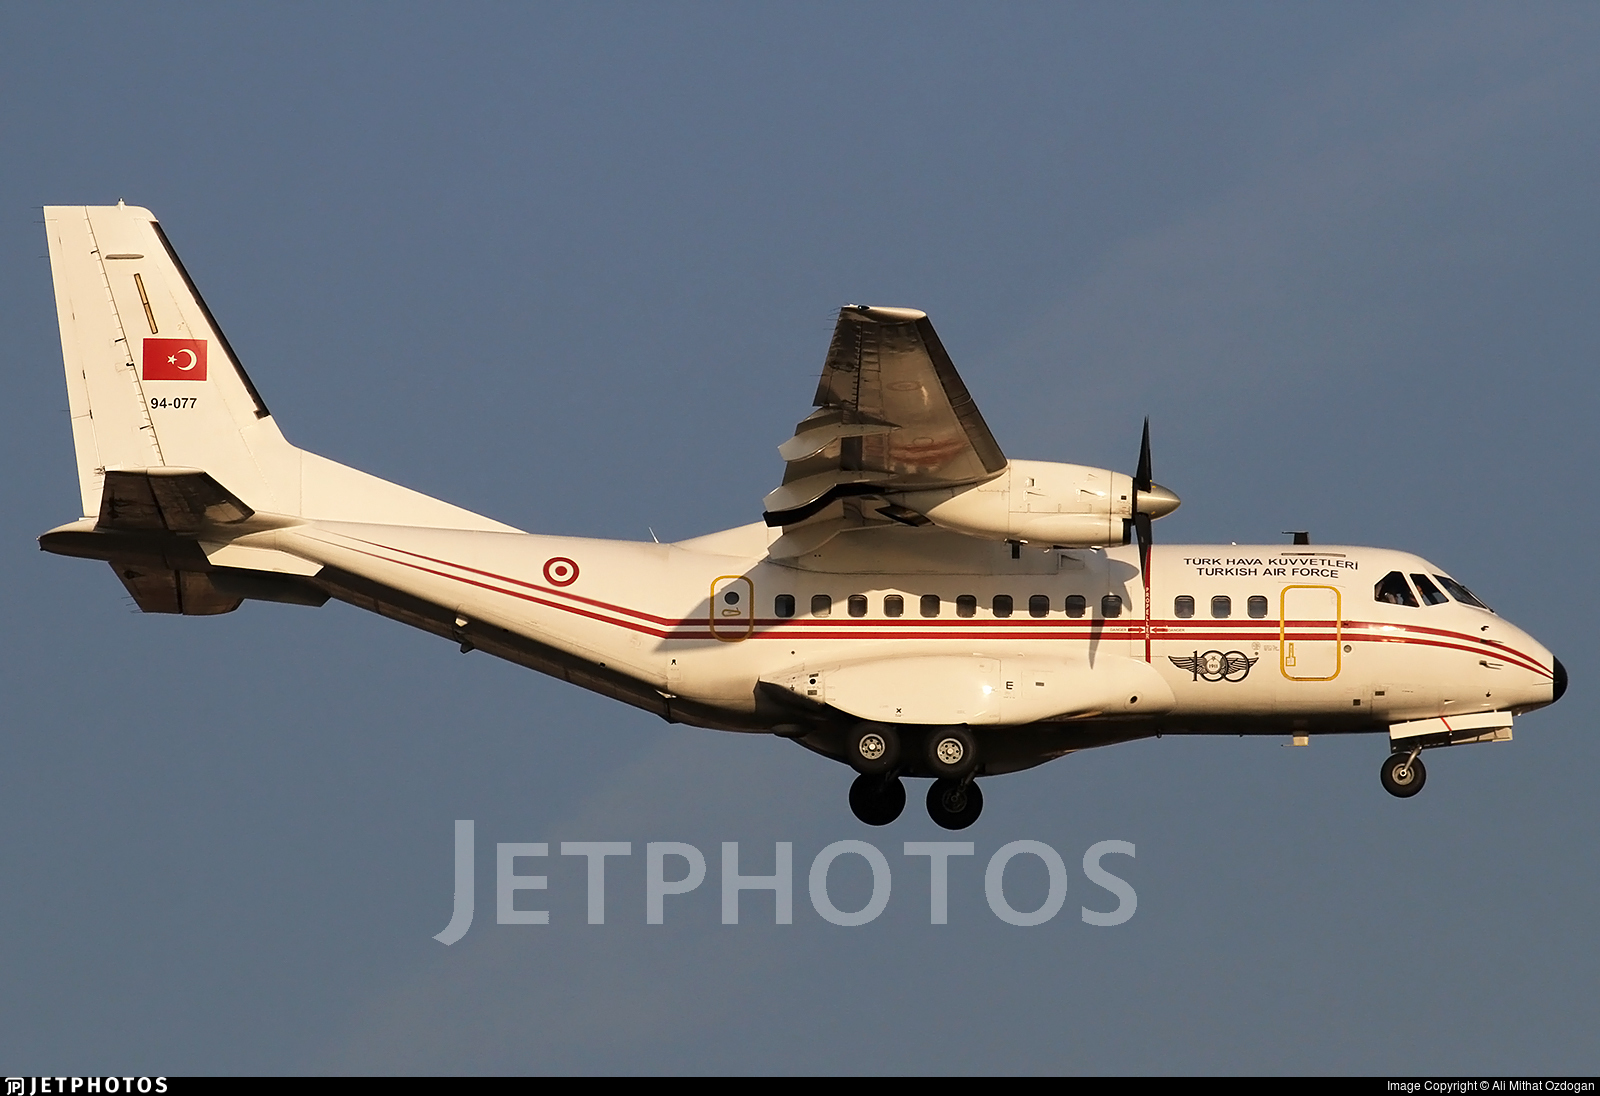 94-077 - CASA CN-235-100 - Turkey - Air Force